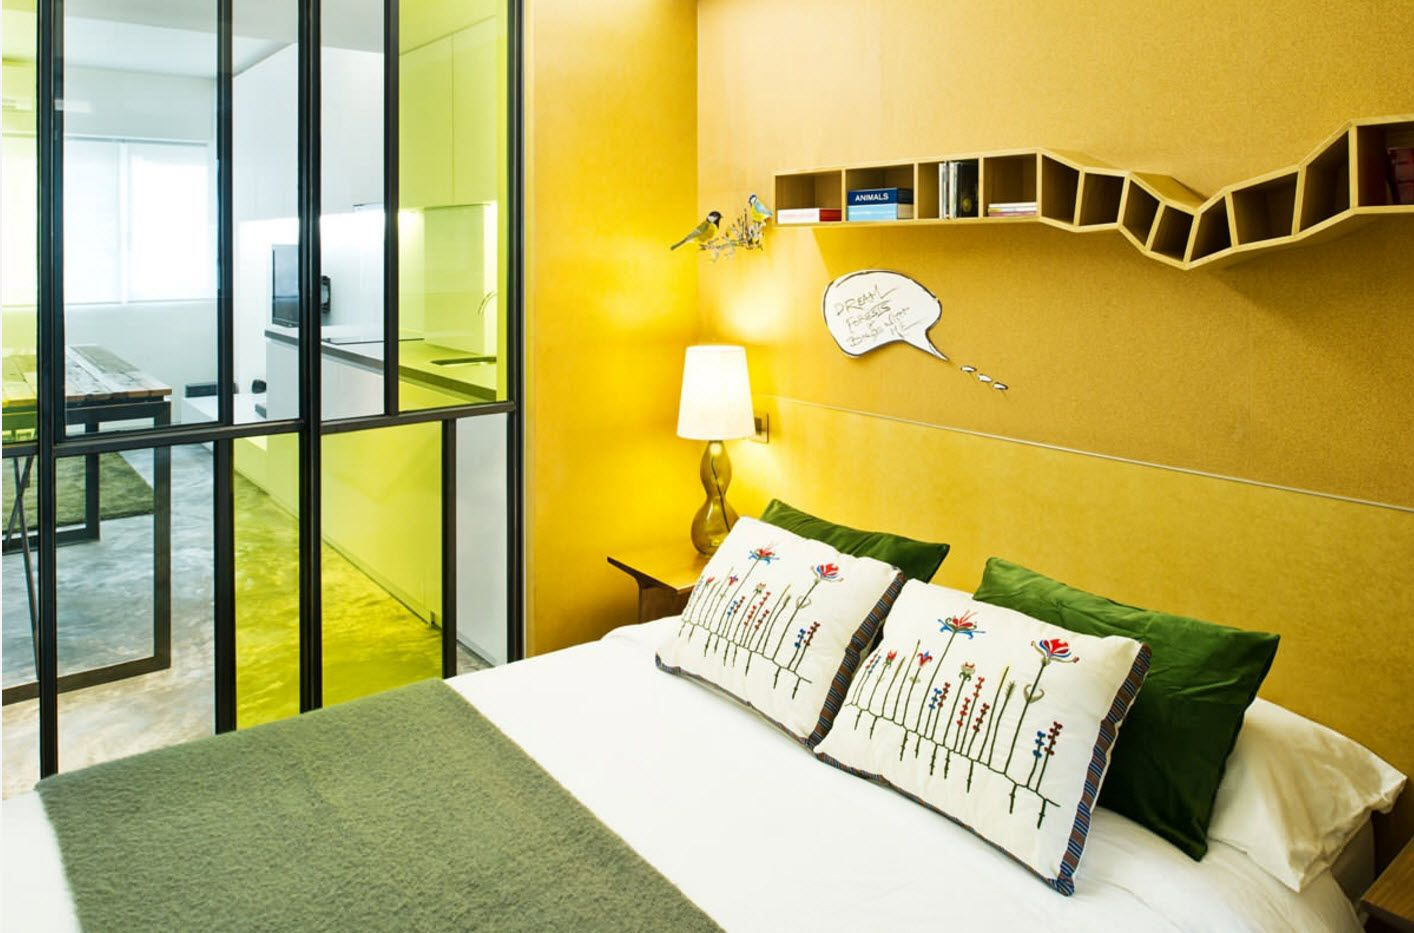 Yellow walls and the glass surfaces all-round the bed